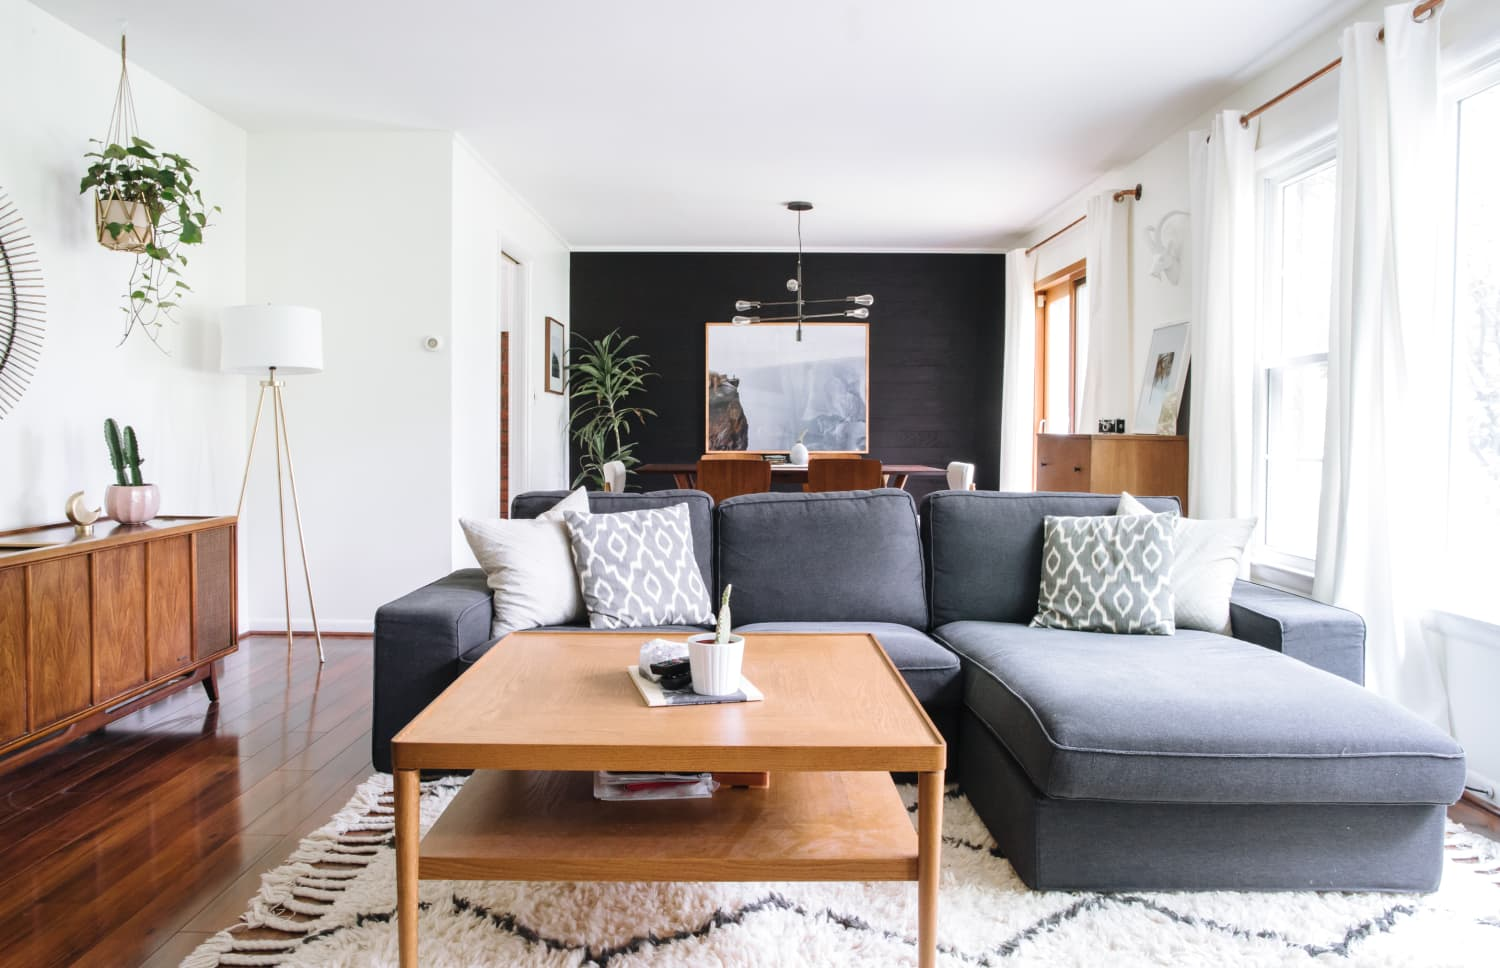 9 Cheap Design Tricks That Will Make Your Home Look Expensive